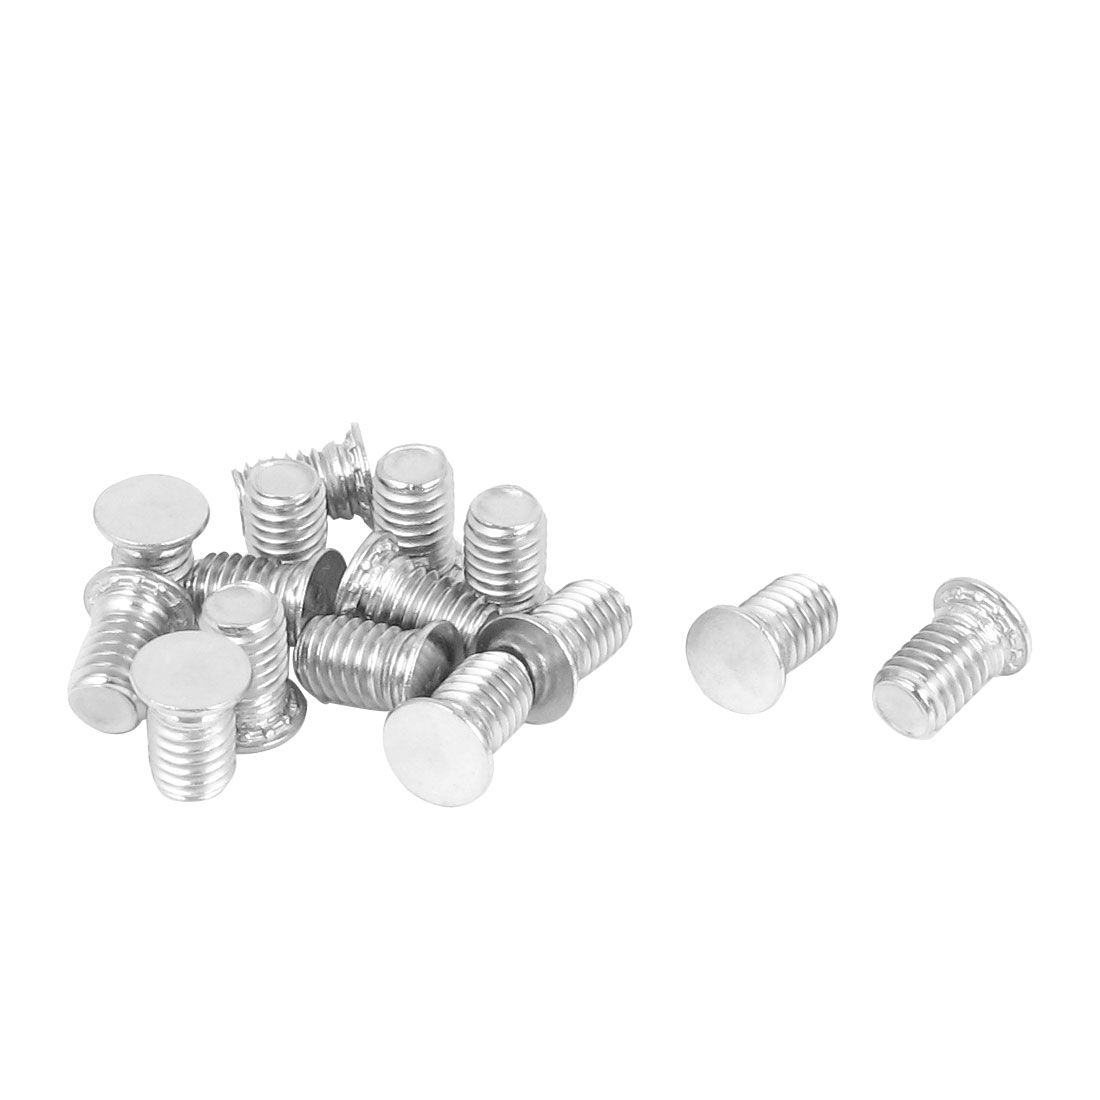 M6x10mm Flush Head Stainless Steel Self Clinching Threaded Studs Fastener 15pcs